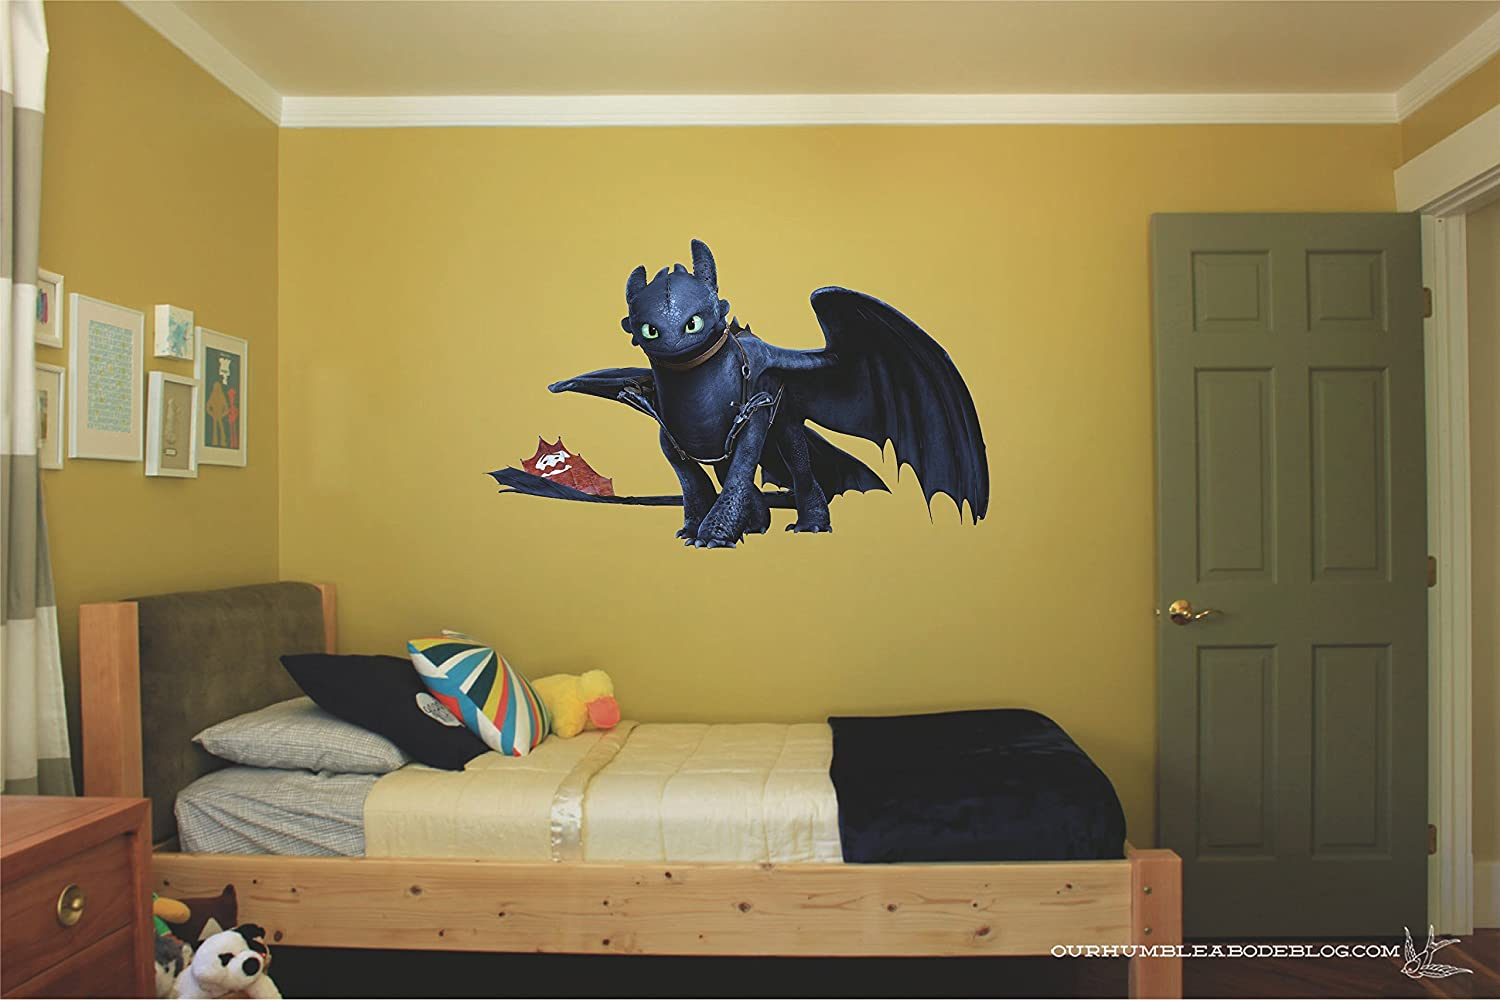 Amazon.com: Toothless how to train your dragon Night fury 3D Wall ...